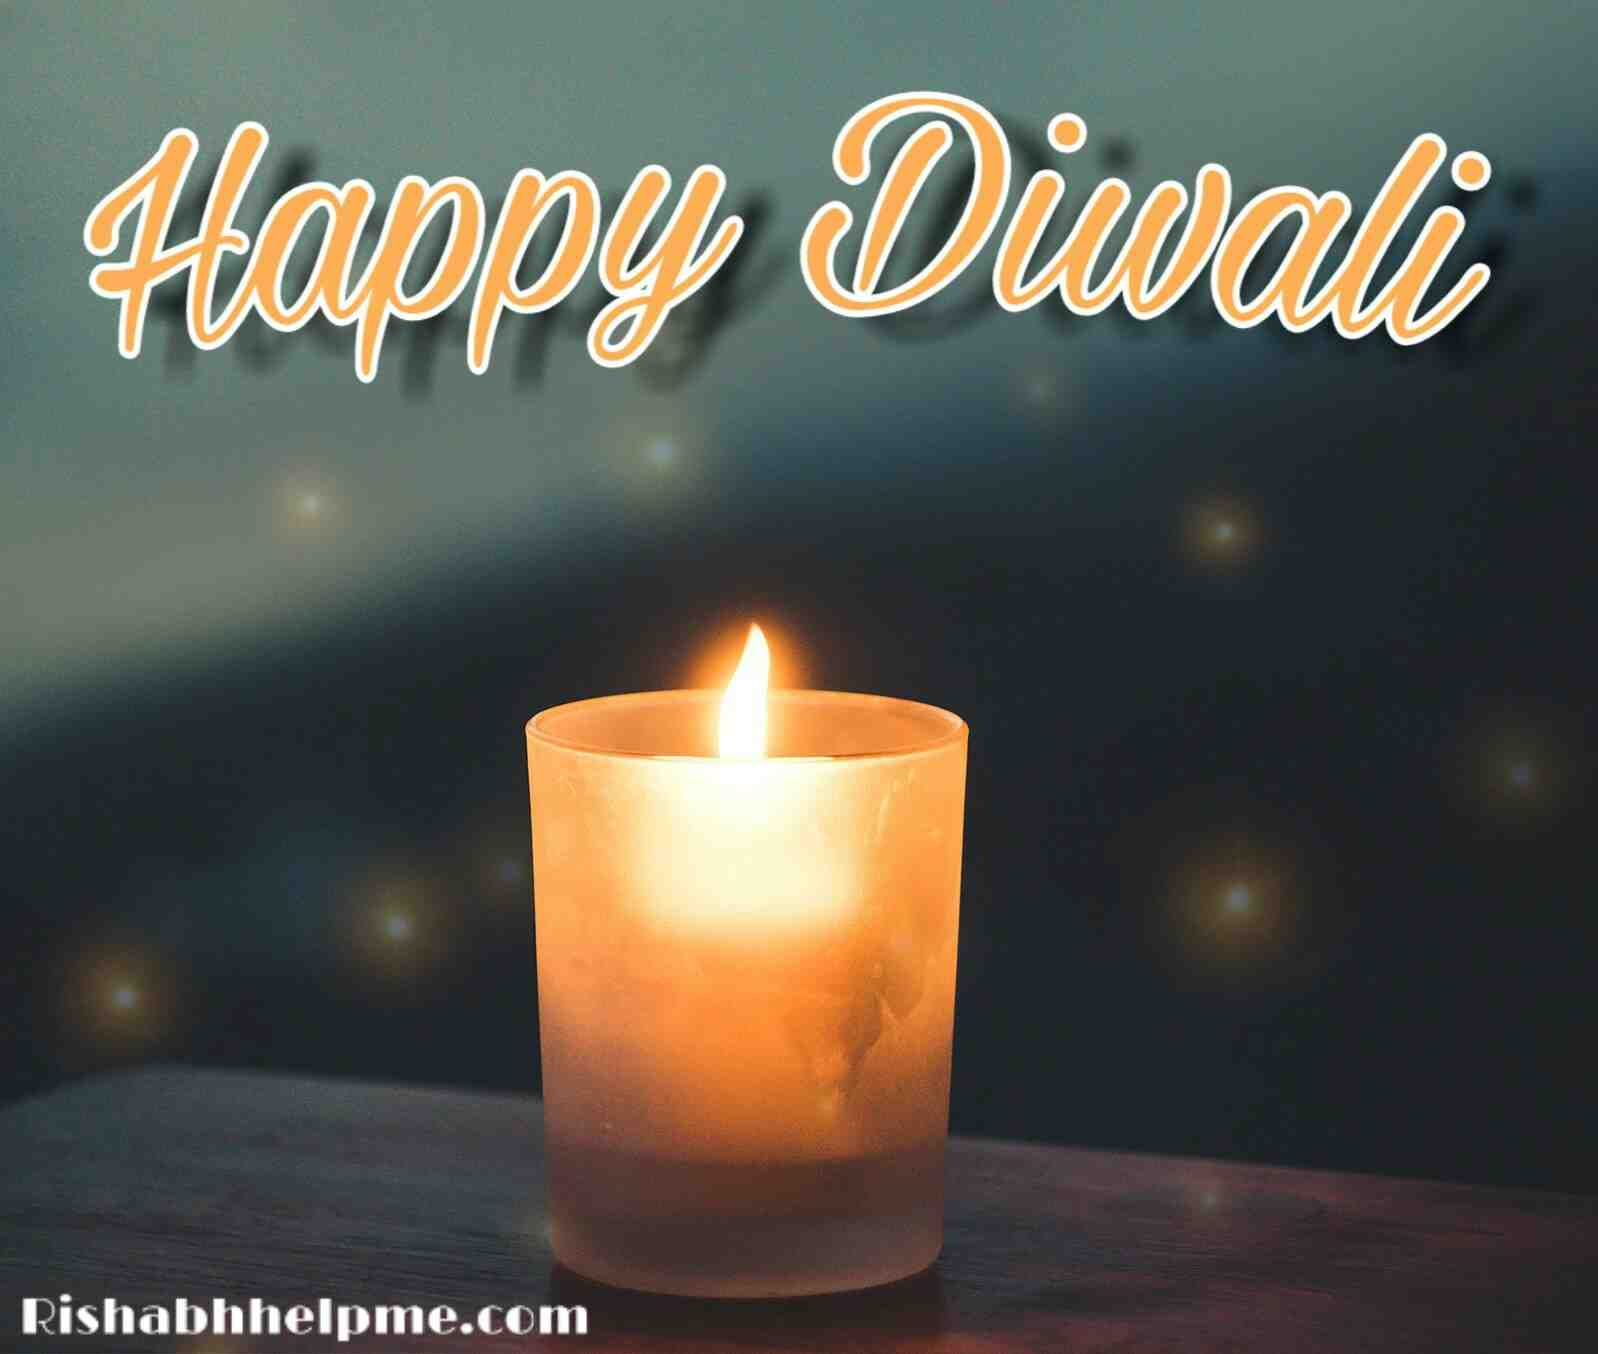 Happy Diwali 2019: Messages, Wishes, SMS, Images And Facebook Greetings